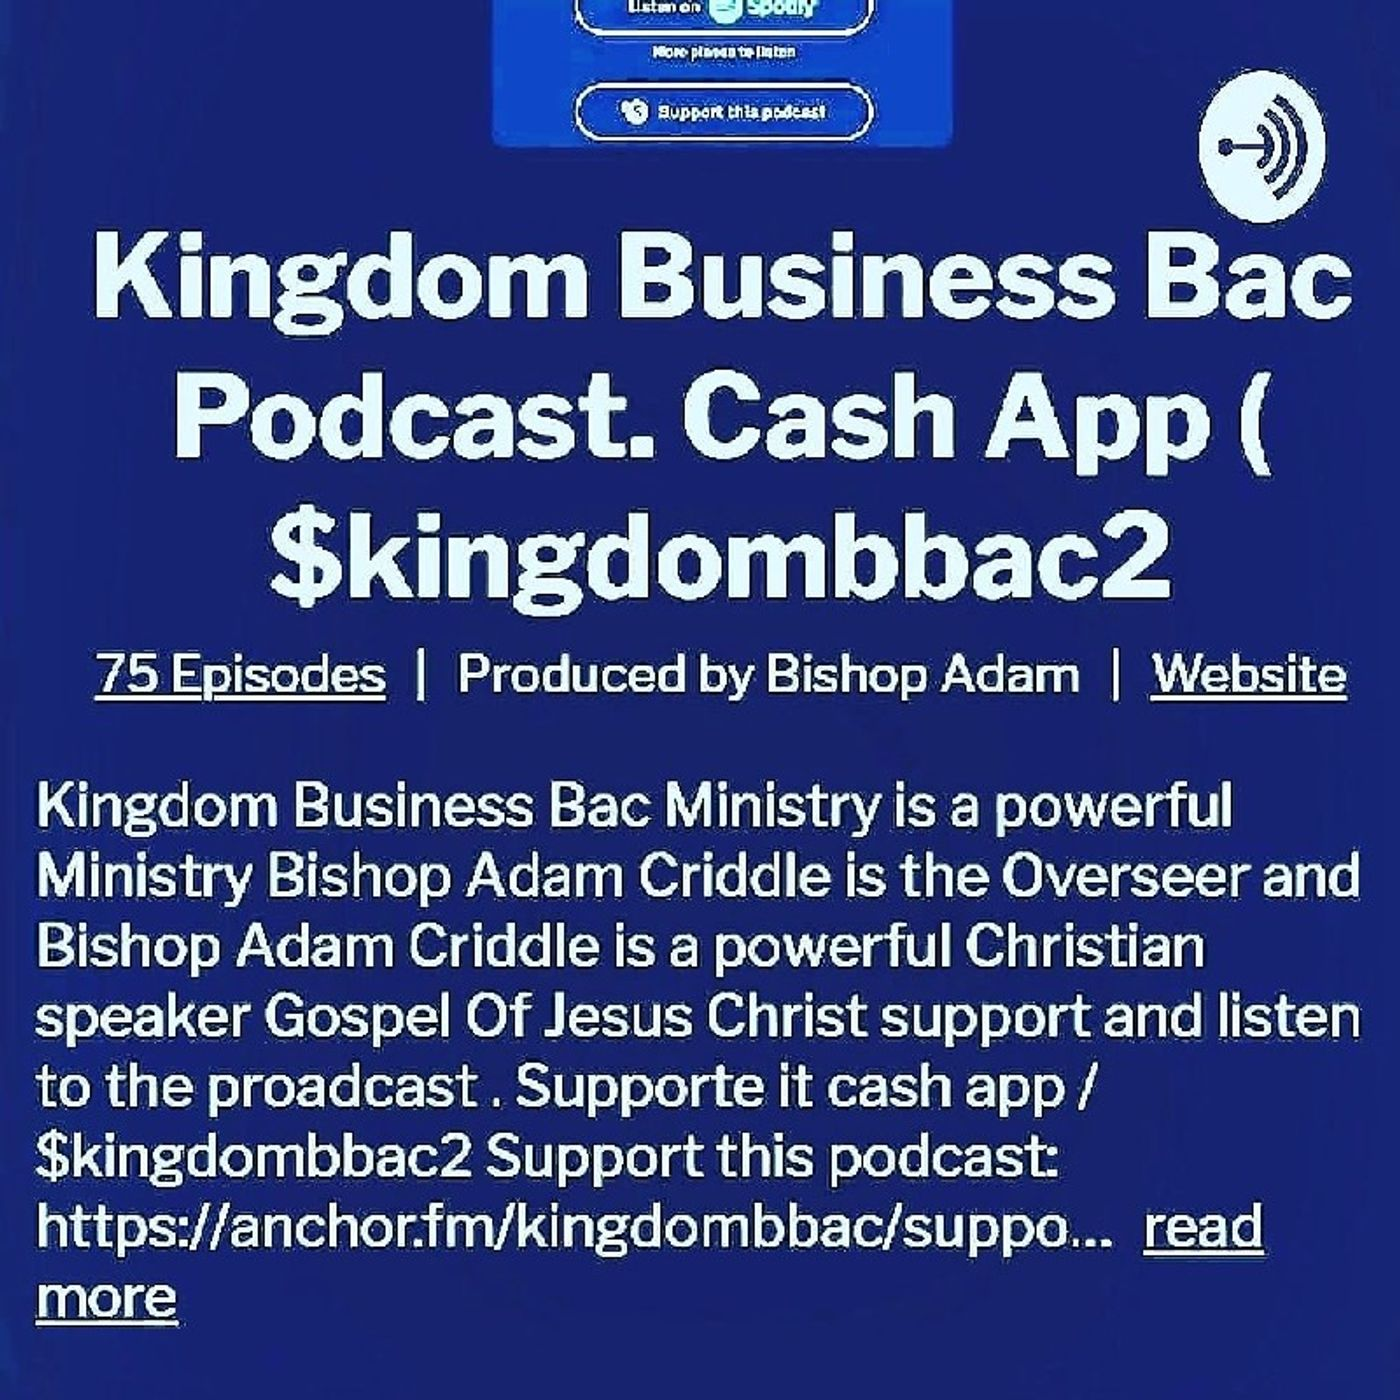 Episode 112 - KIMGDOM BUSINESS Bac Ministry's show